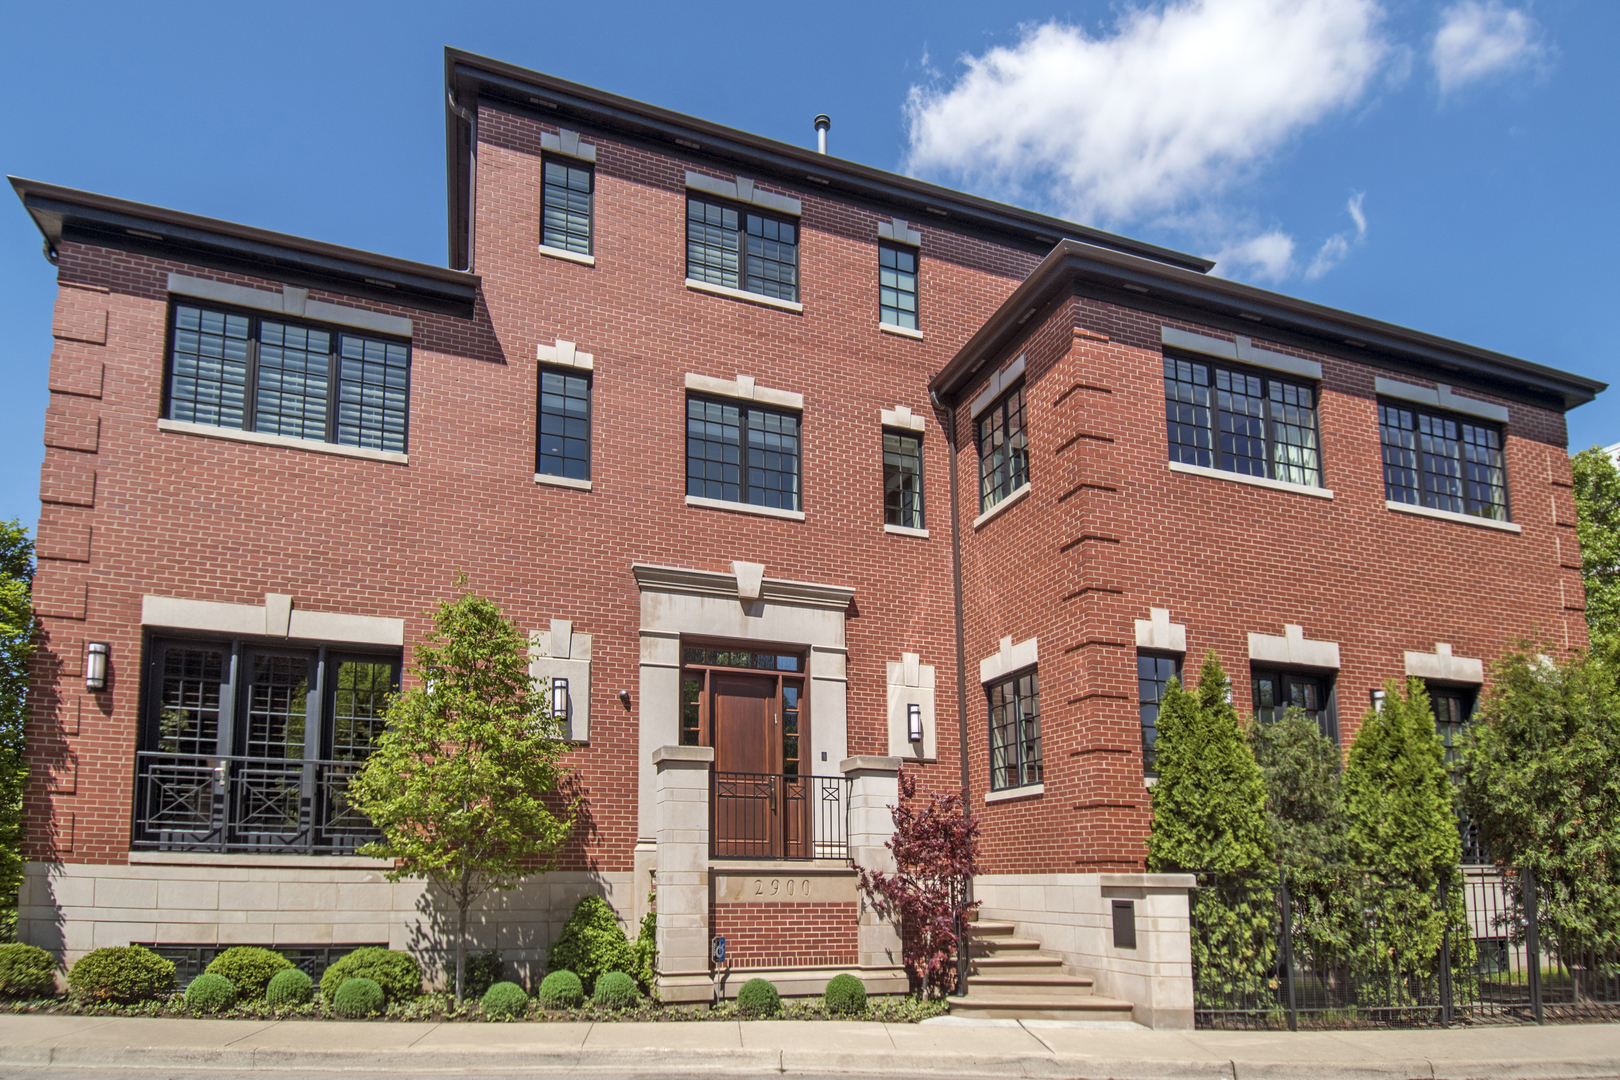 Property for sale at 2900 North Hermitage Avenue, CHICAGO,  Il 60657